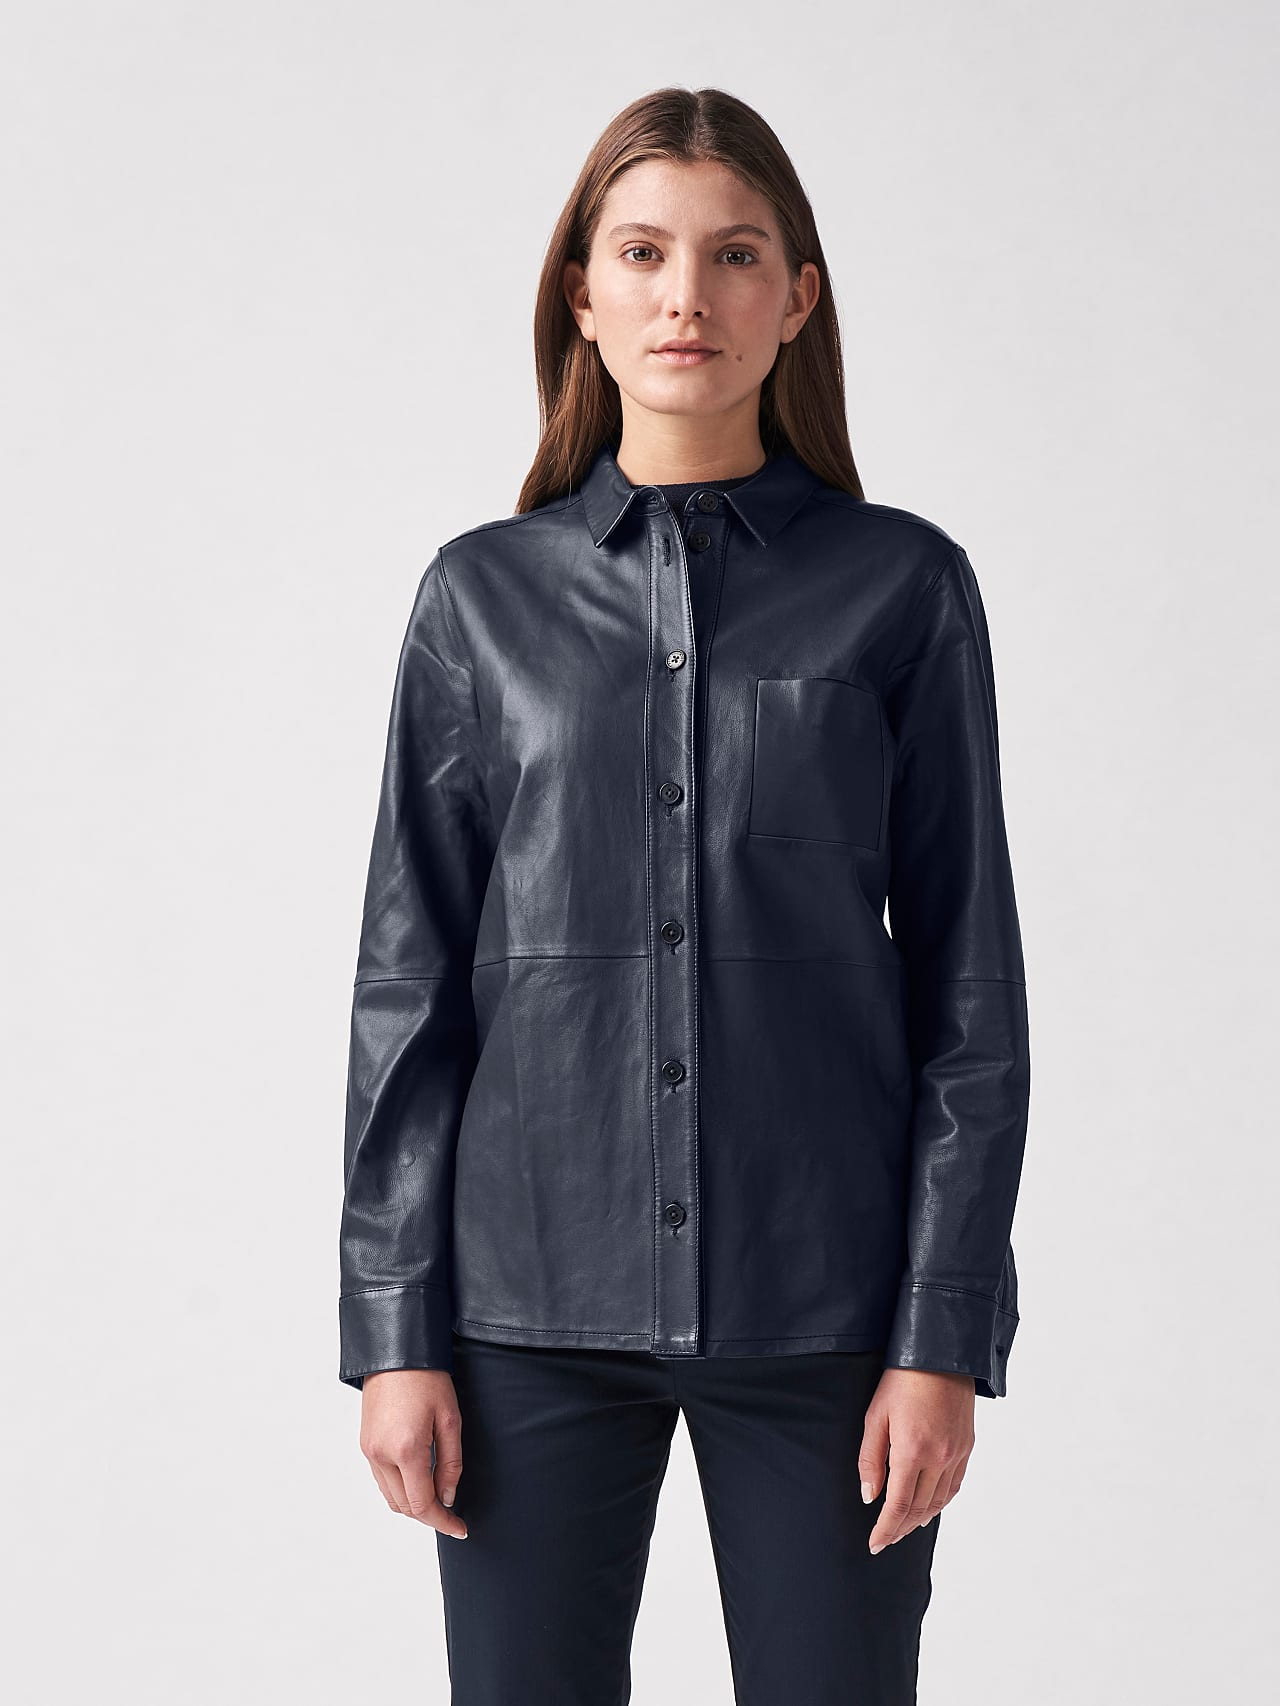 LEORD V1.Y5.01 Leather Shirt navy Front Alpha Tauri